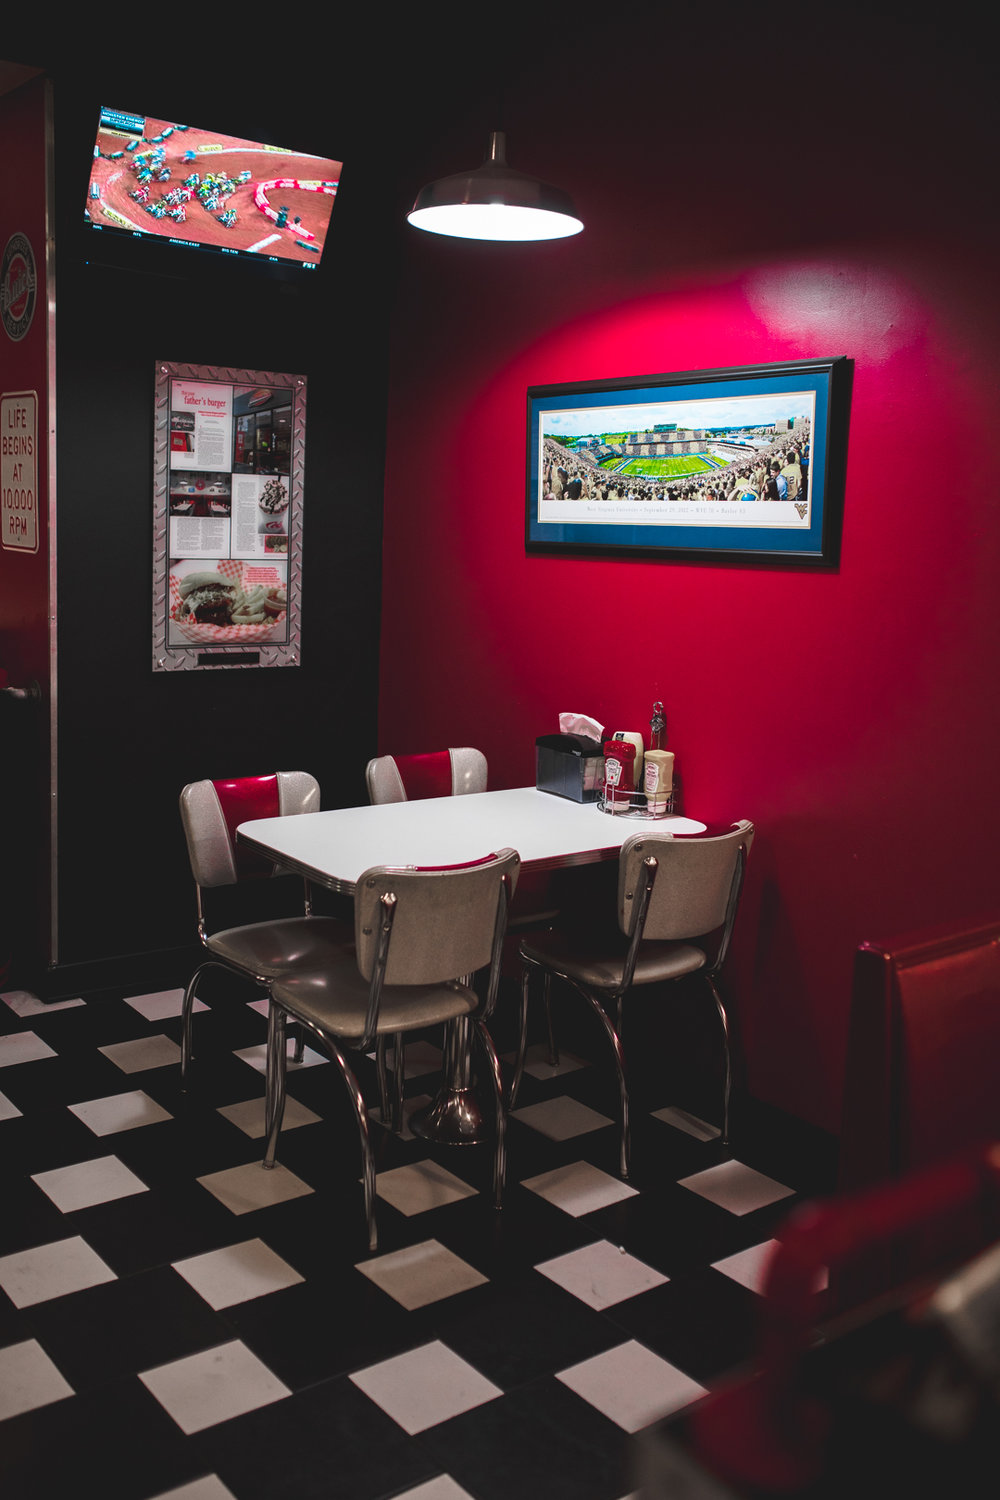 tailpipes-4.jpg